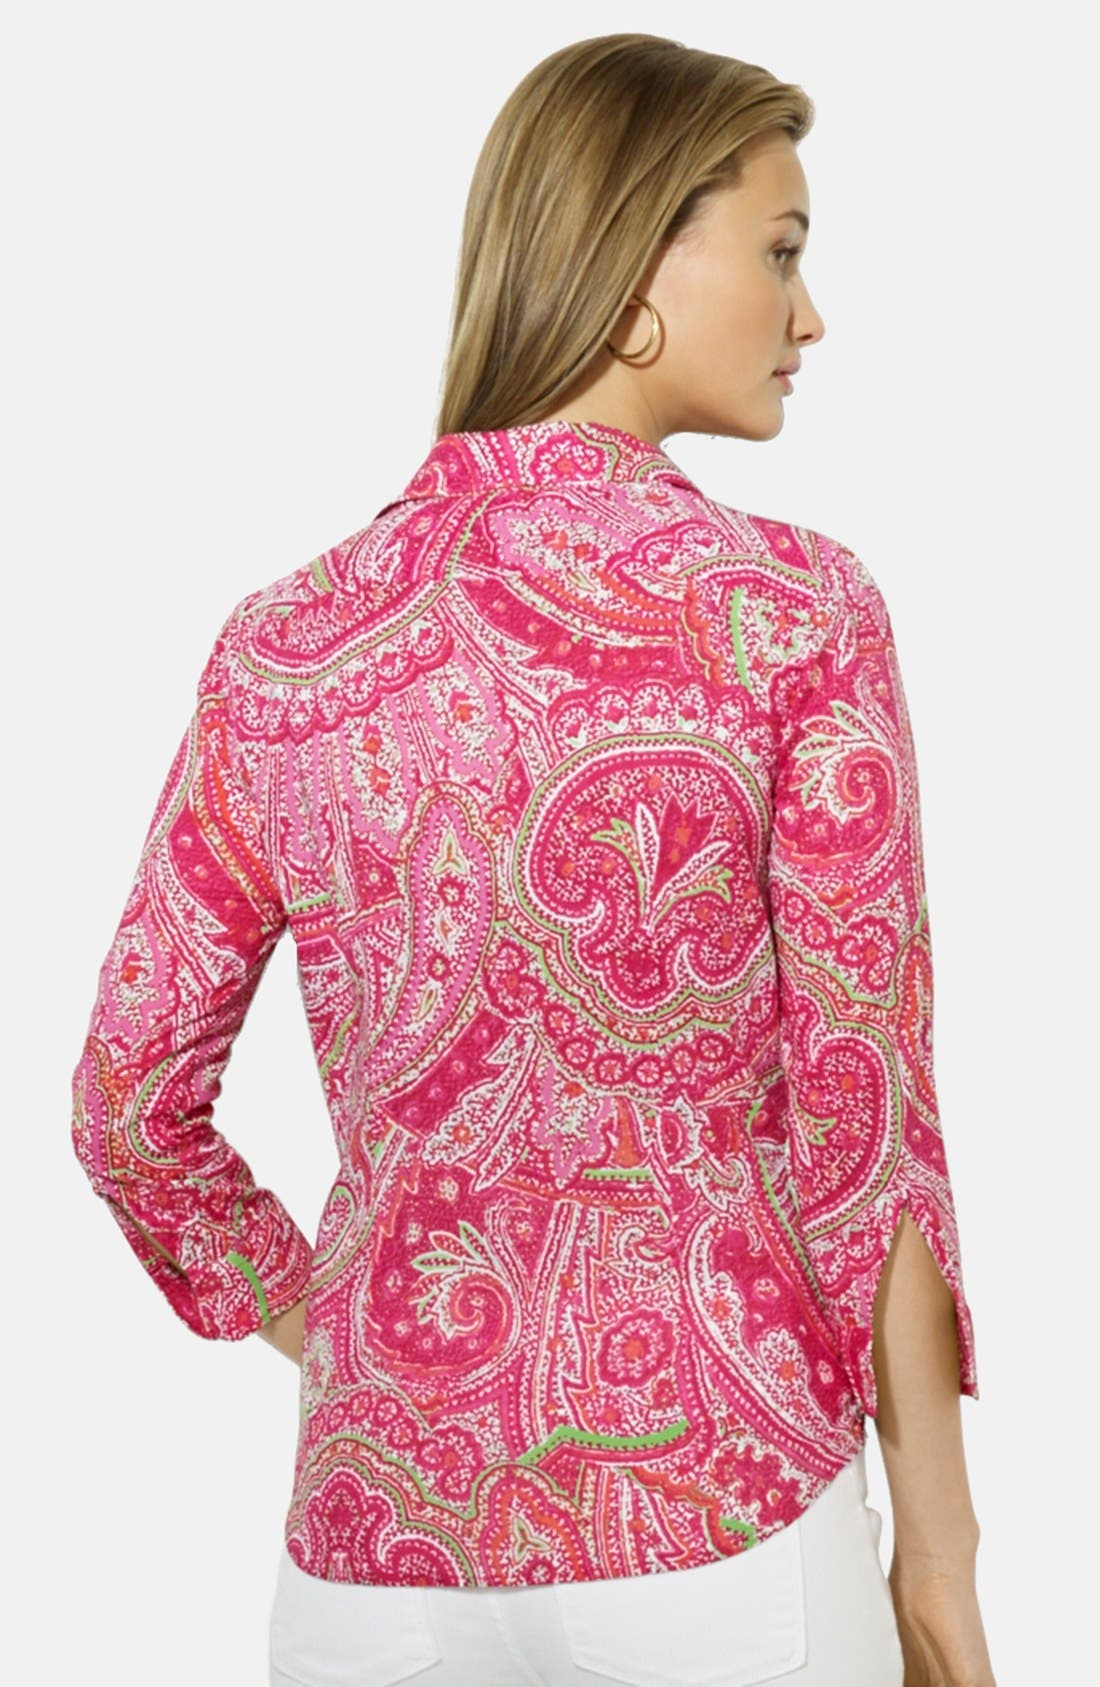 Paisley Print Cotton Shirt,                             Alternate thumbnail 2, color,                             690